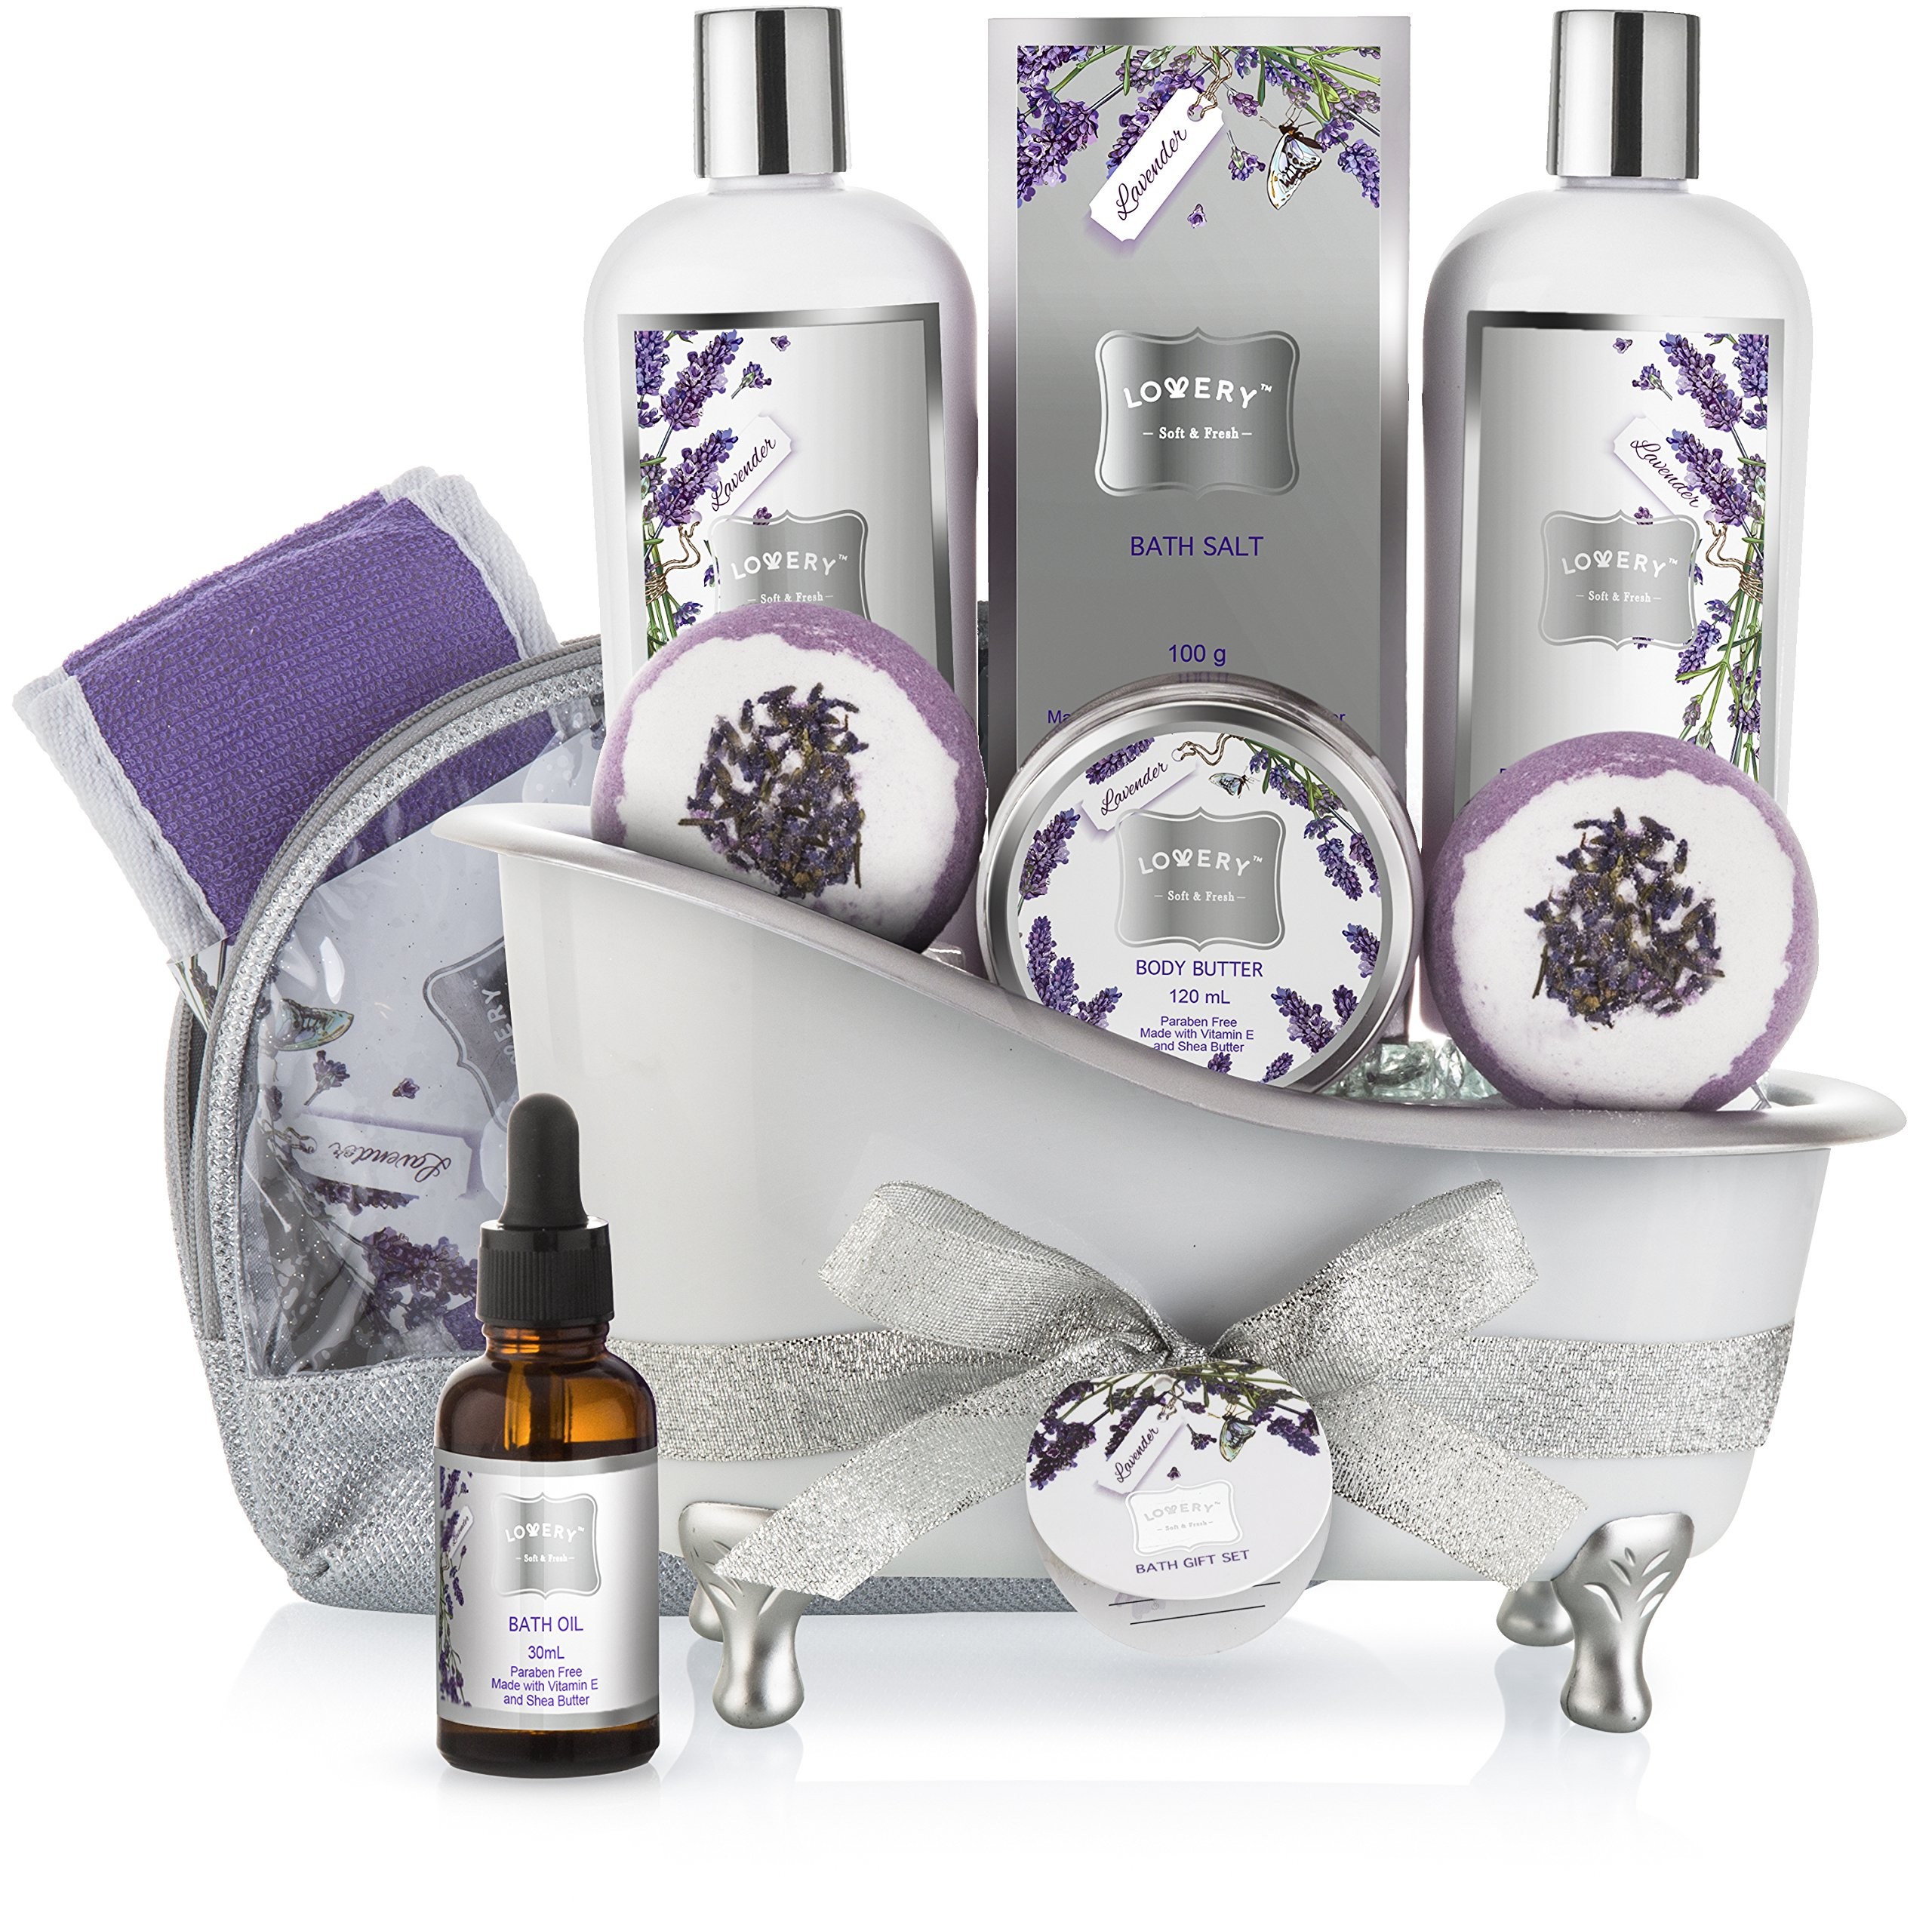 Bath Gift Basket Set for Women: Relaxing at Home Spa Kit Scented with Lavender and Jasmine - Includes Large Bath Bombs, Salts, Shower Gel, Body Butter Lotion, Bath Oil, Bubble Bath, Loofah and More by LOVERY